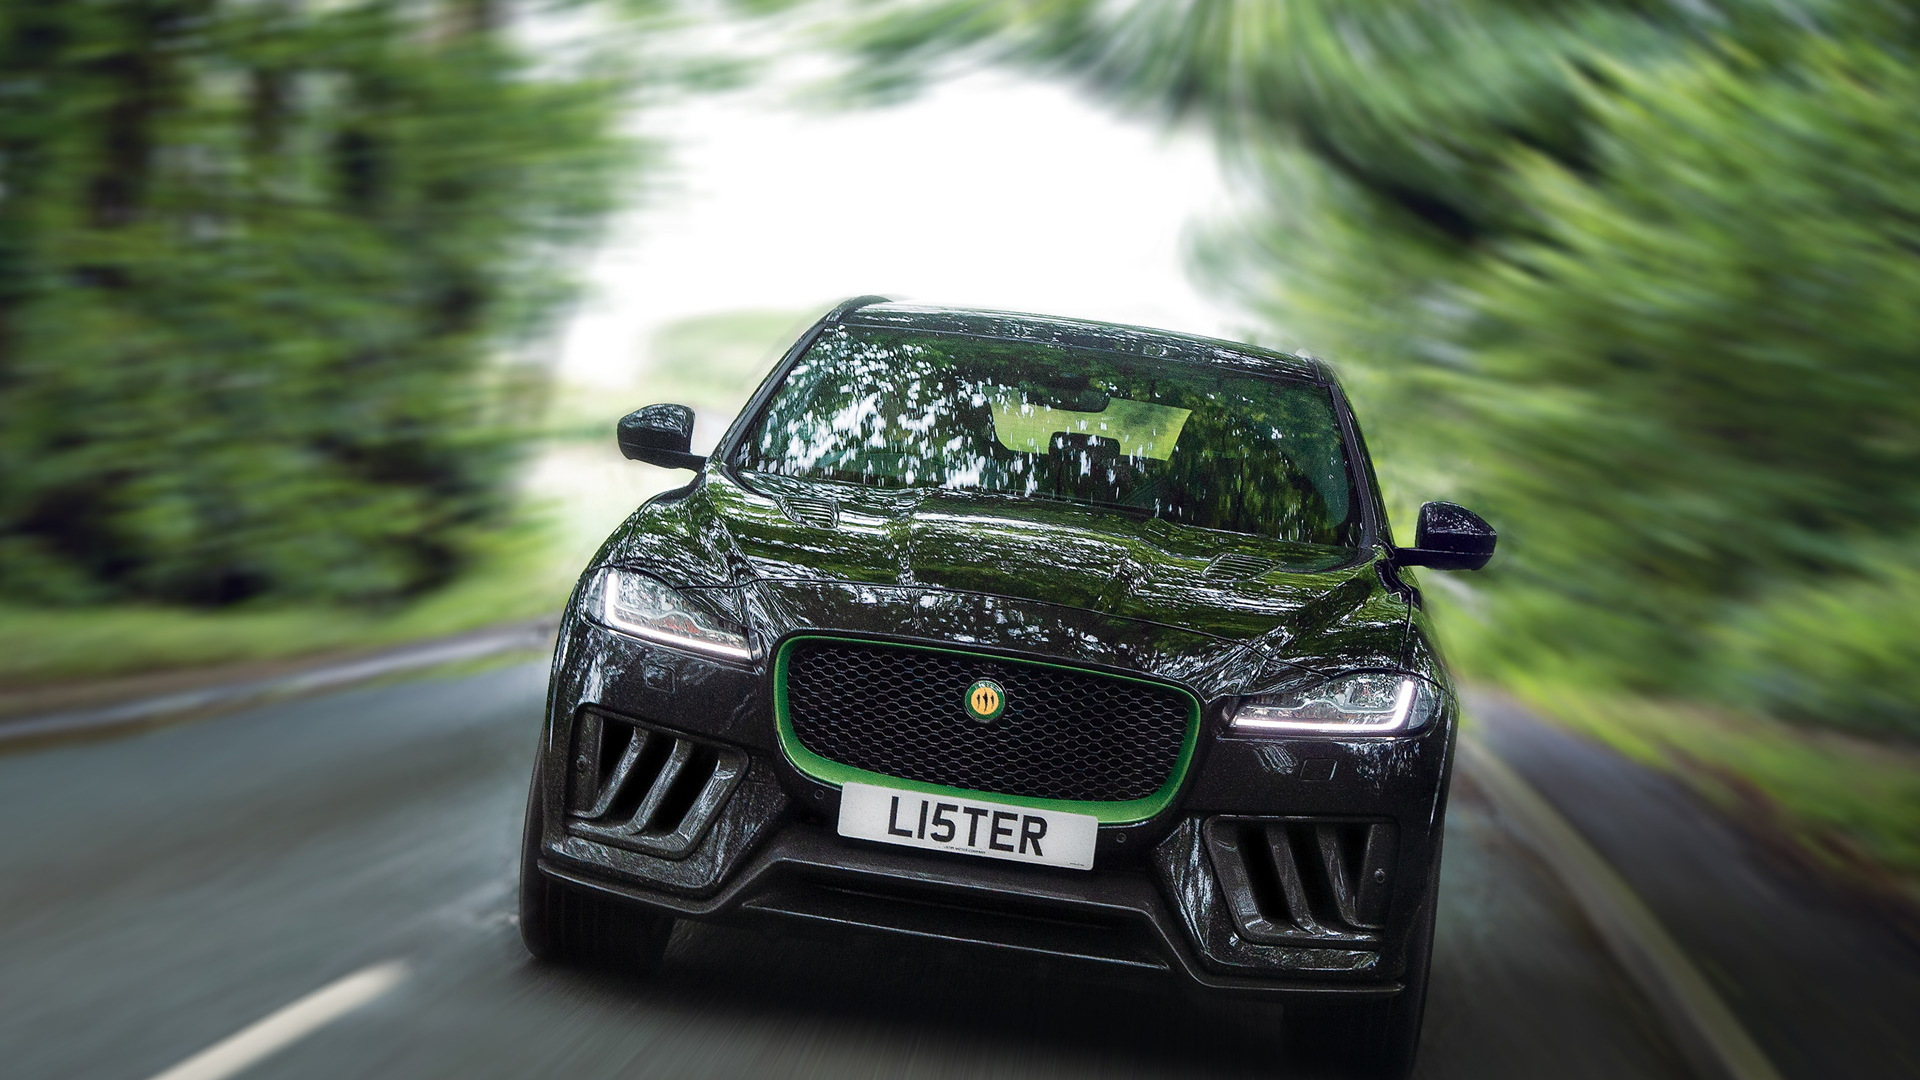 2020 Lister Stealth based on the Jaguar F-Pace SVR